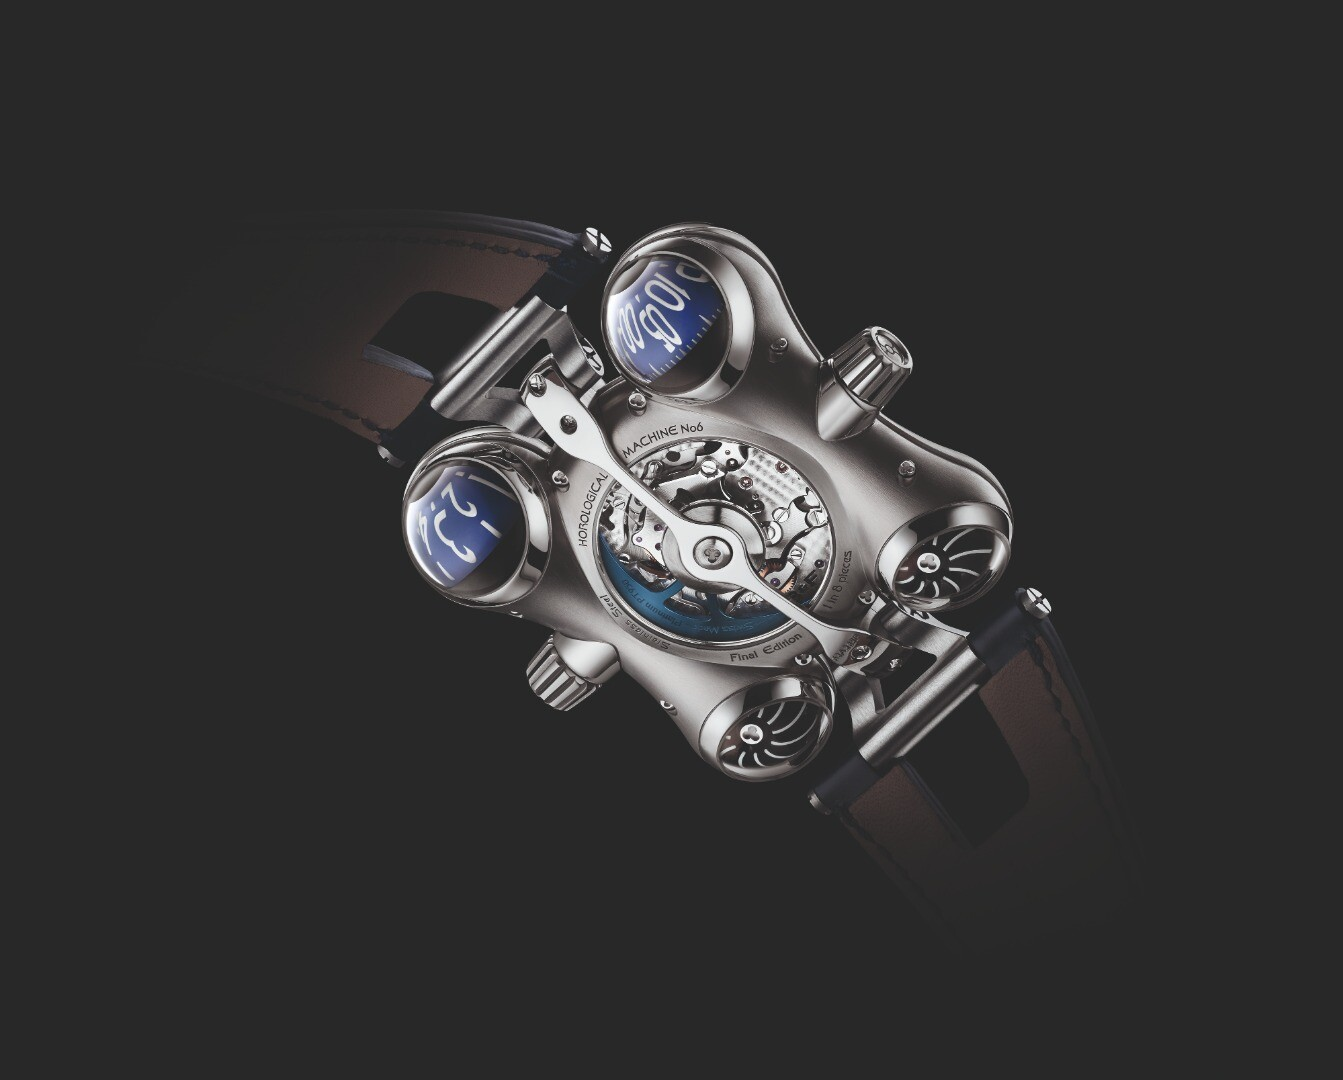 The MB&F HM6 Final Edition comes in a run of eight units